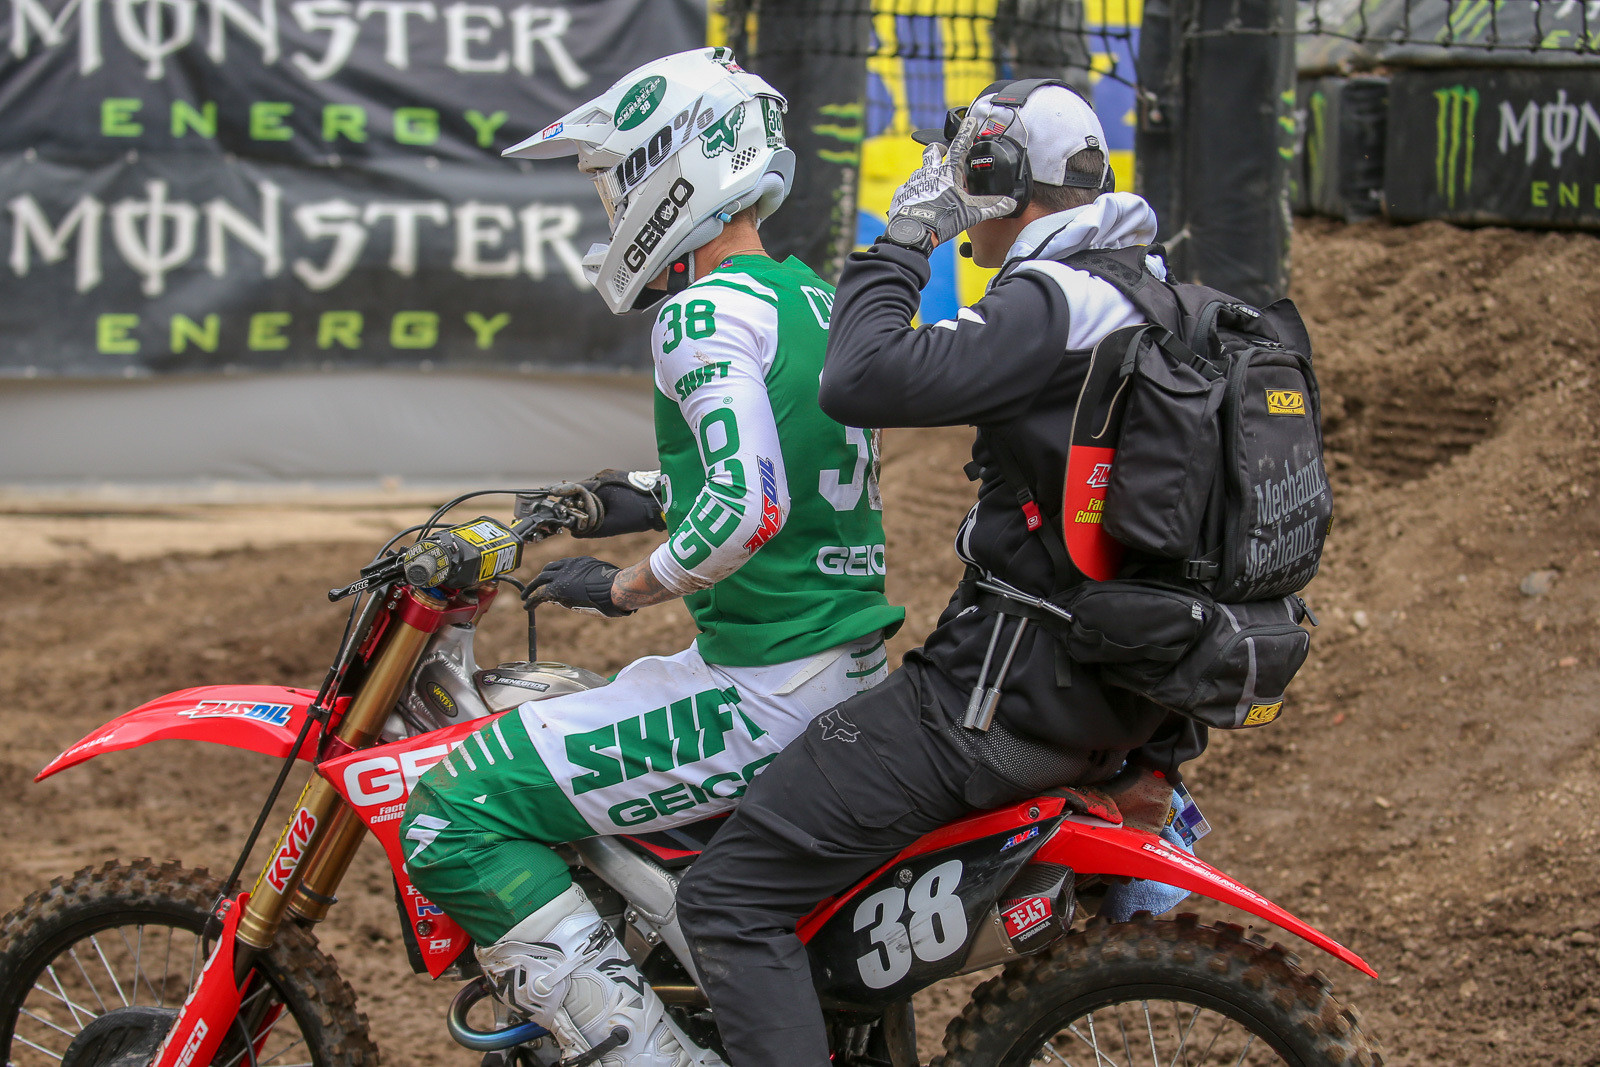 Ouch. Christian Craig exited the final 250 qualifying session early after rounding off the corners of his GEICO Honda.